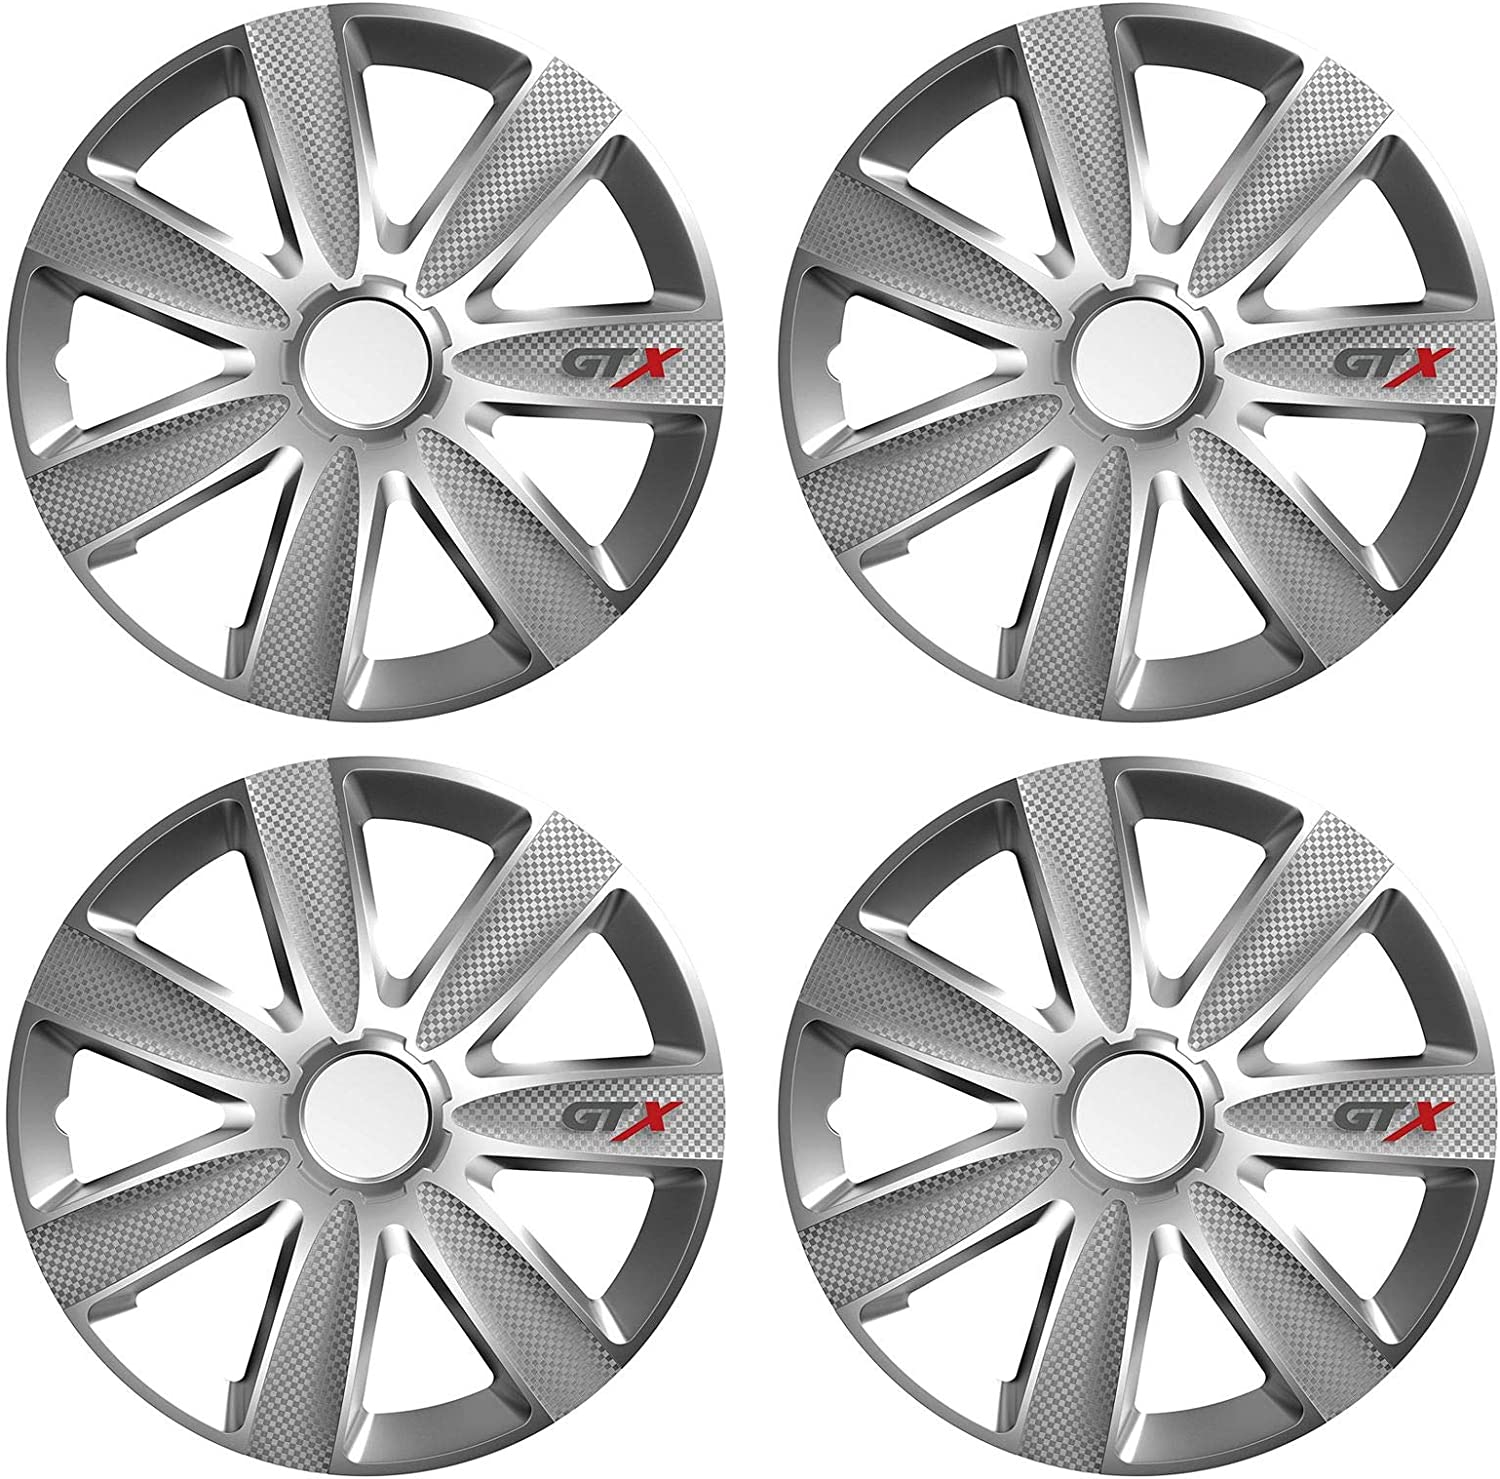 UKB4C 4 x GTX Wheel Trims Hub Caps 15 Covers fits Honda Jazz Civic Accord